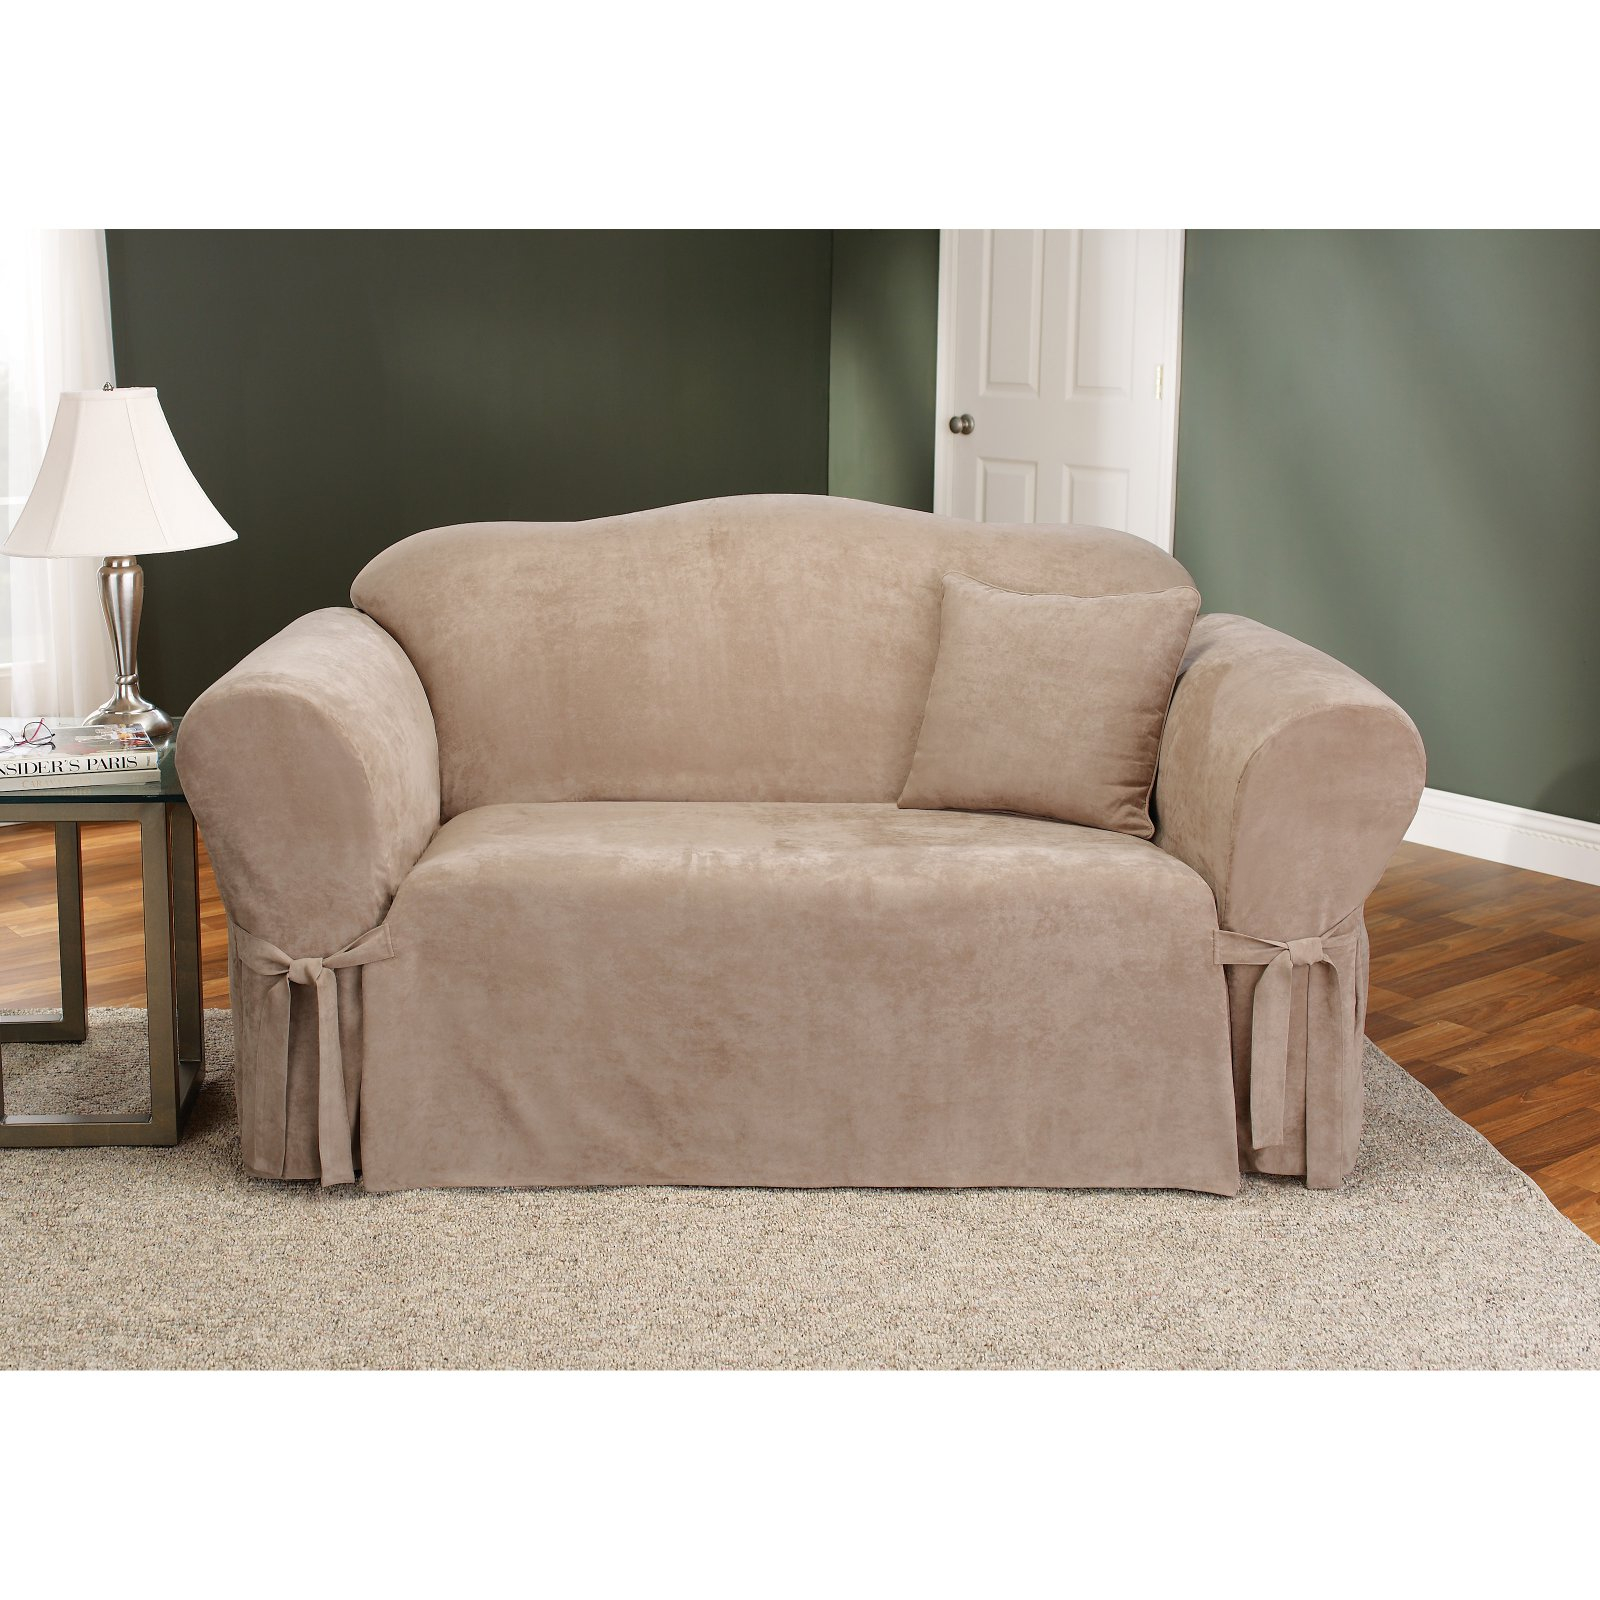 Better Homes and Gardens Soft Suede Sofa Slipcover, Taupe